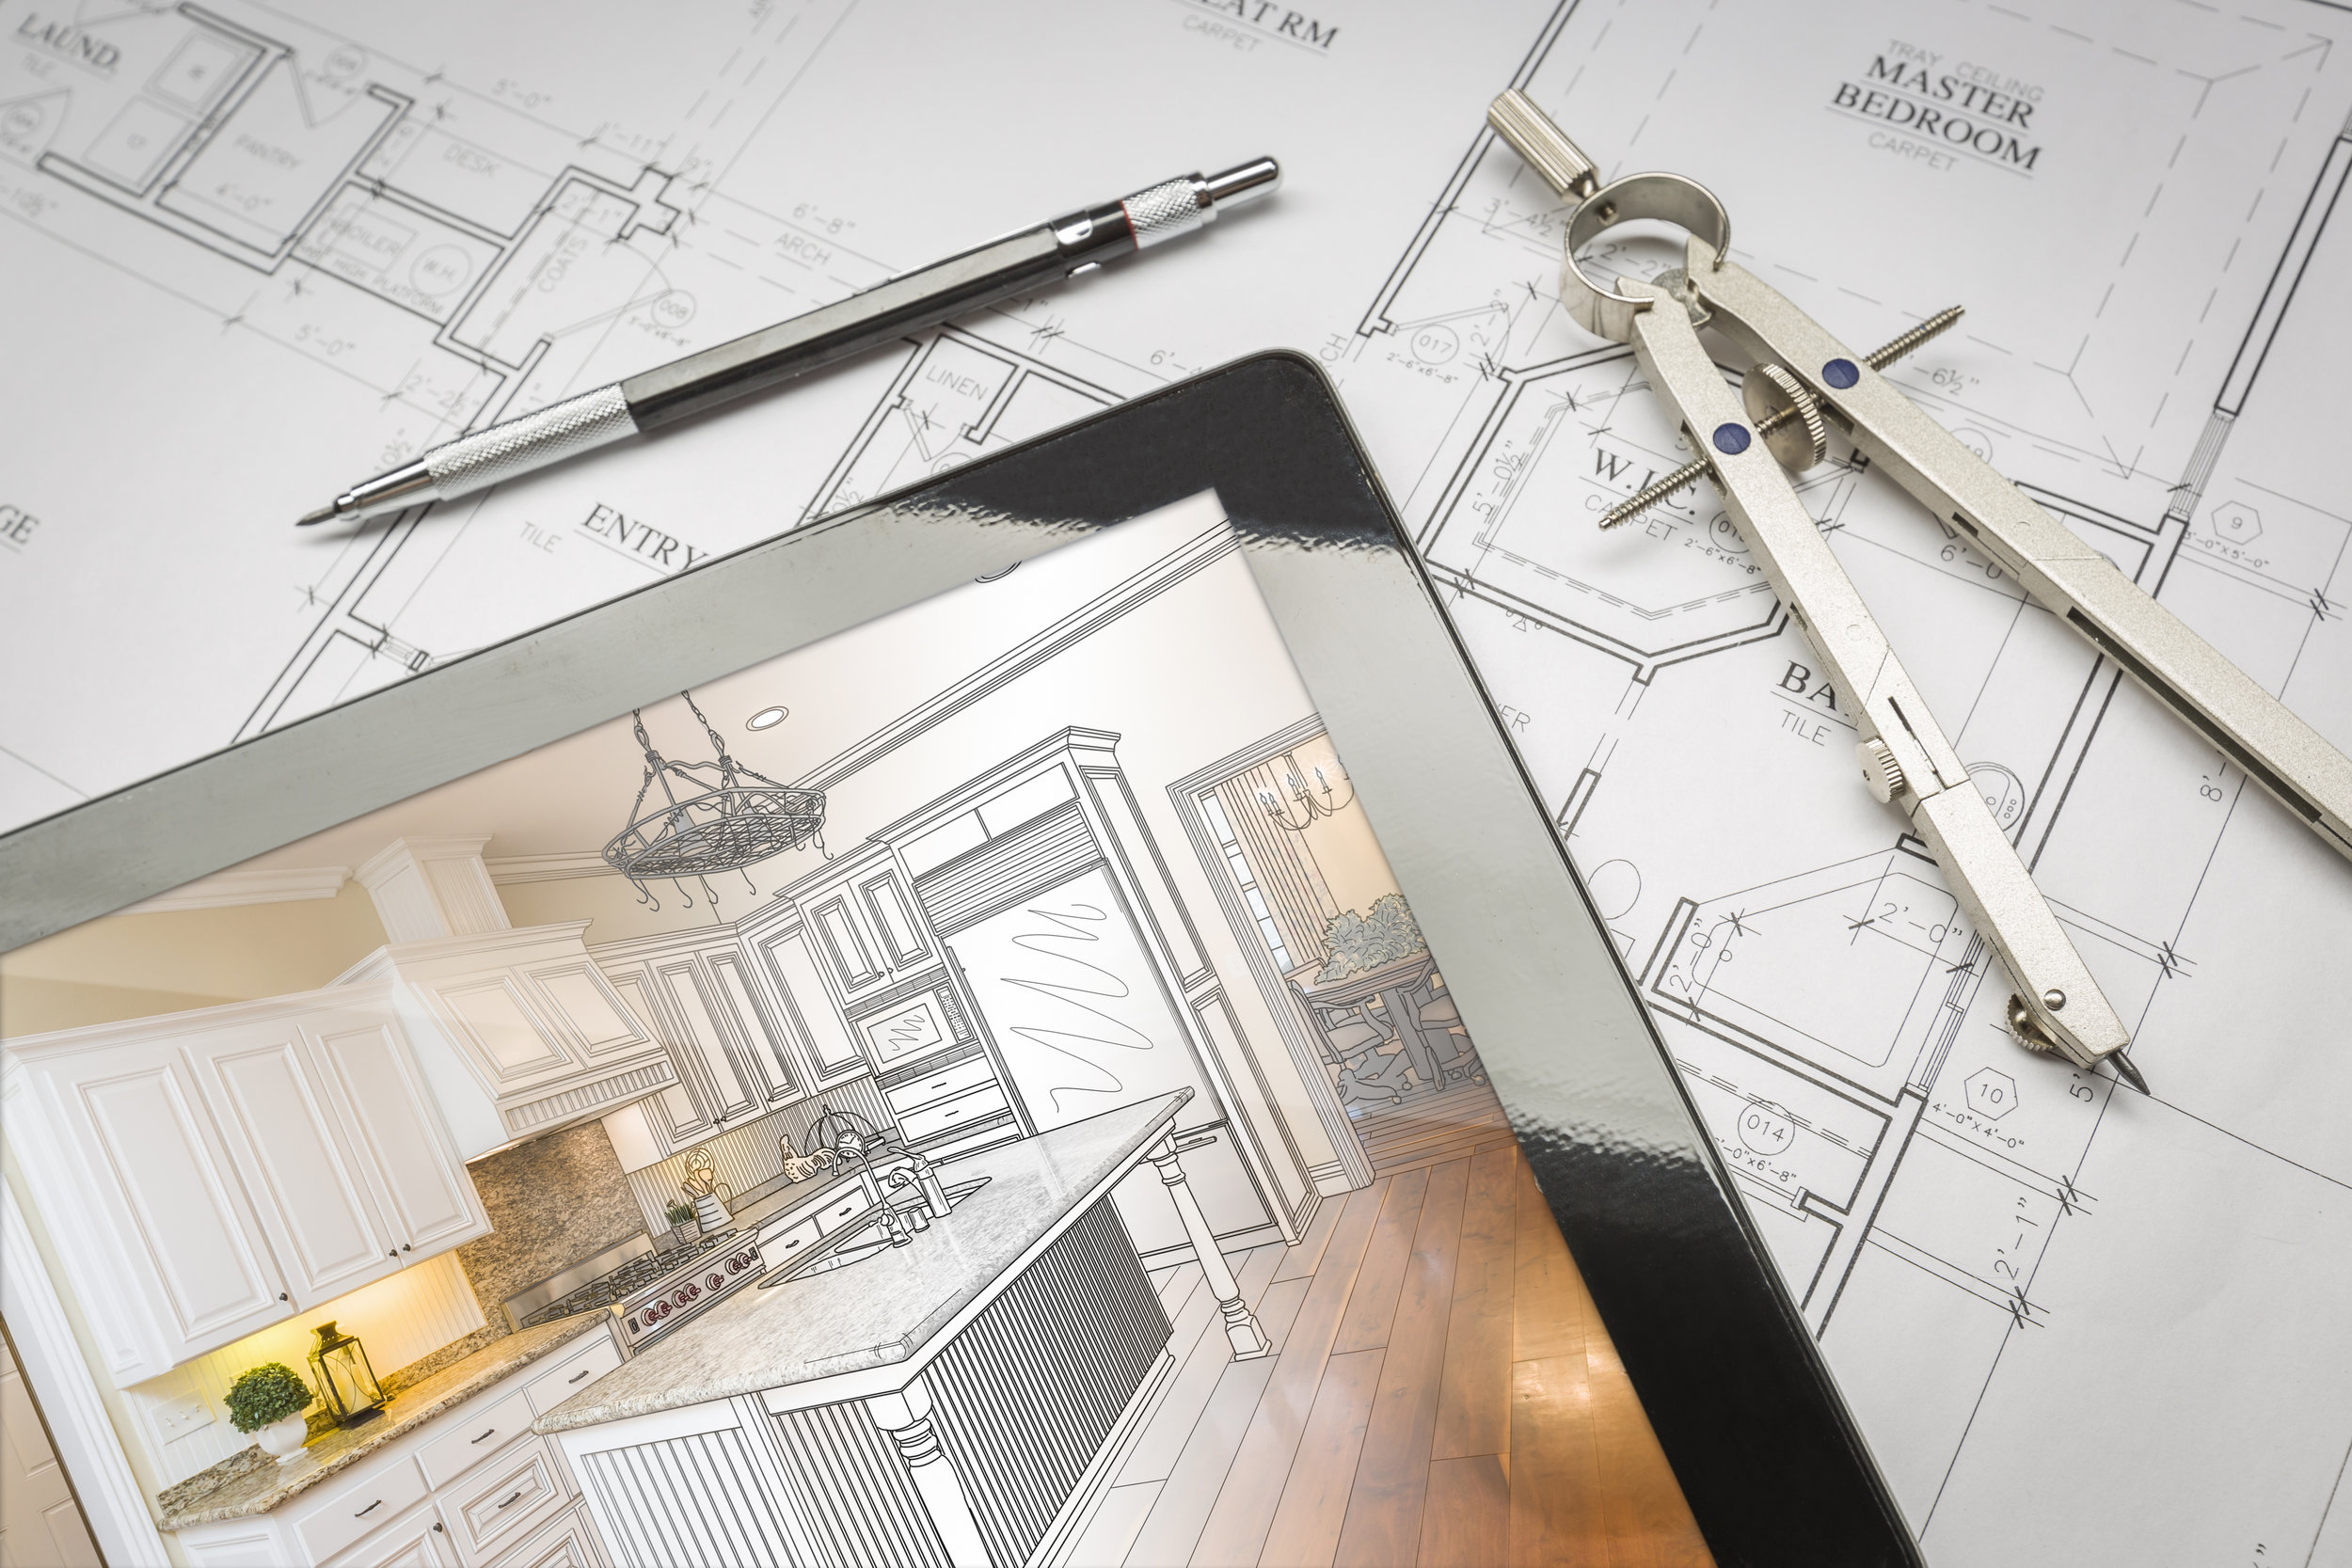 How To Start And Build Successful Home Remodeling Companies